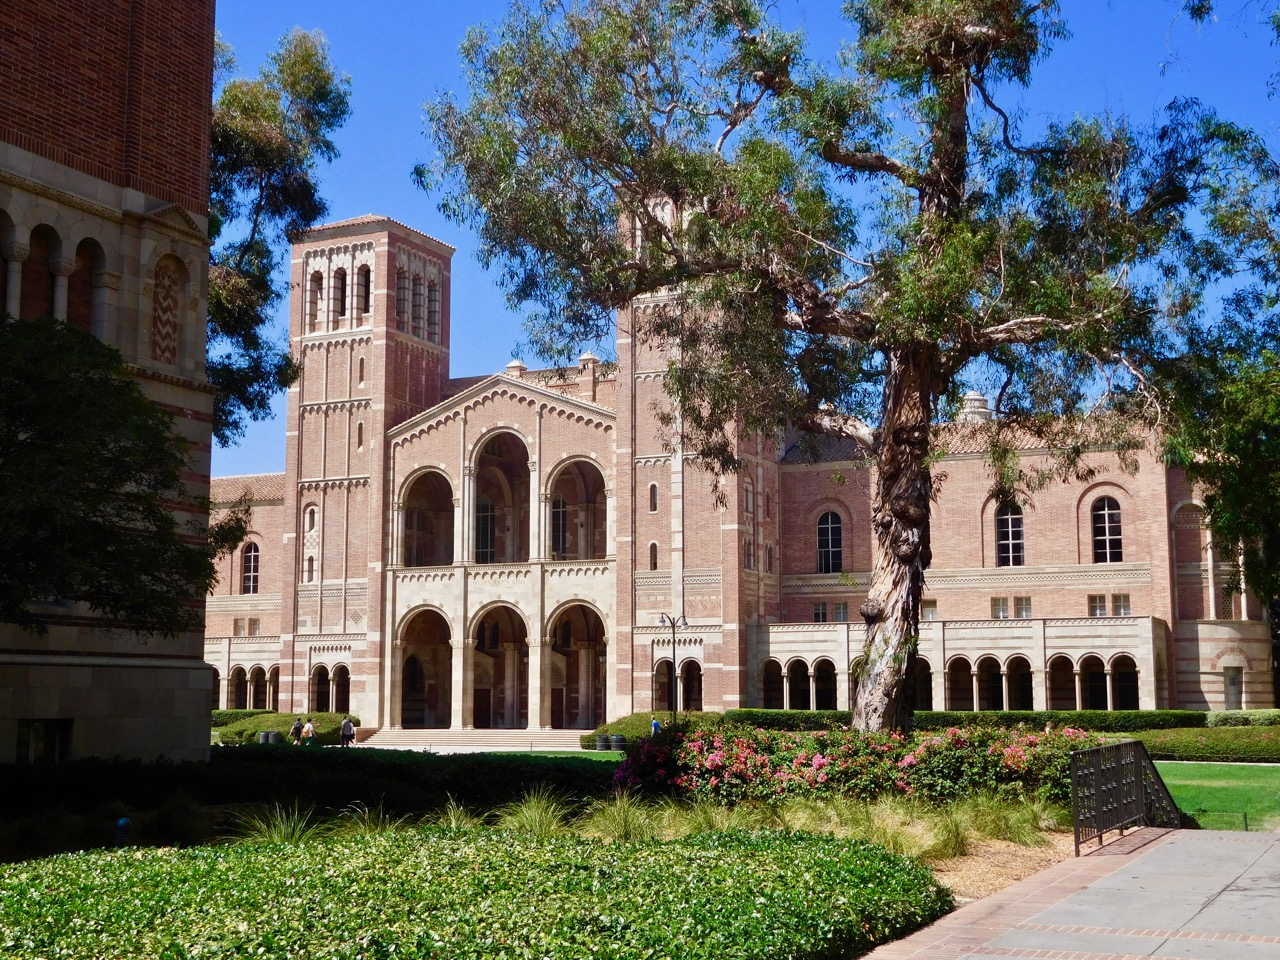 3 Days in L.A. - UCLA Campus (5)